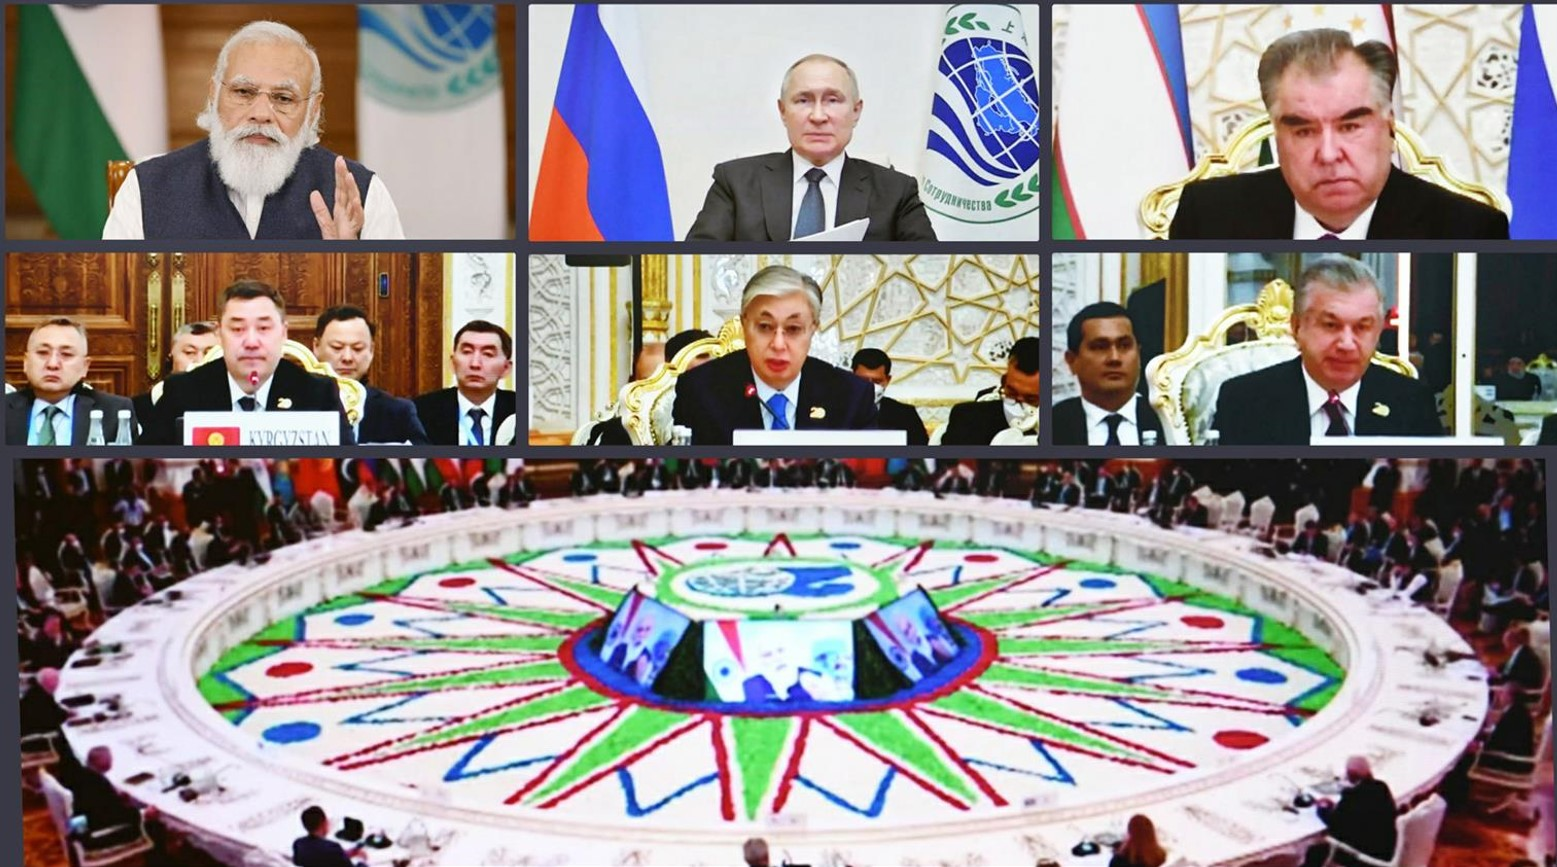 Prime Minister Modi virtually participates in 21st Meeting of the Council of Heads of State of the Shanghai Cooperation Organisation